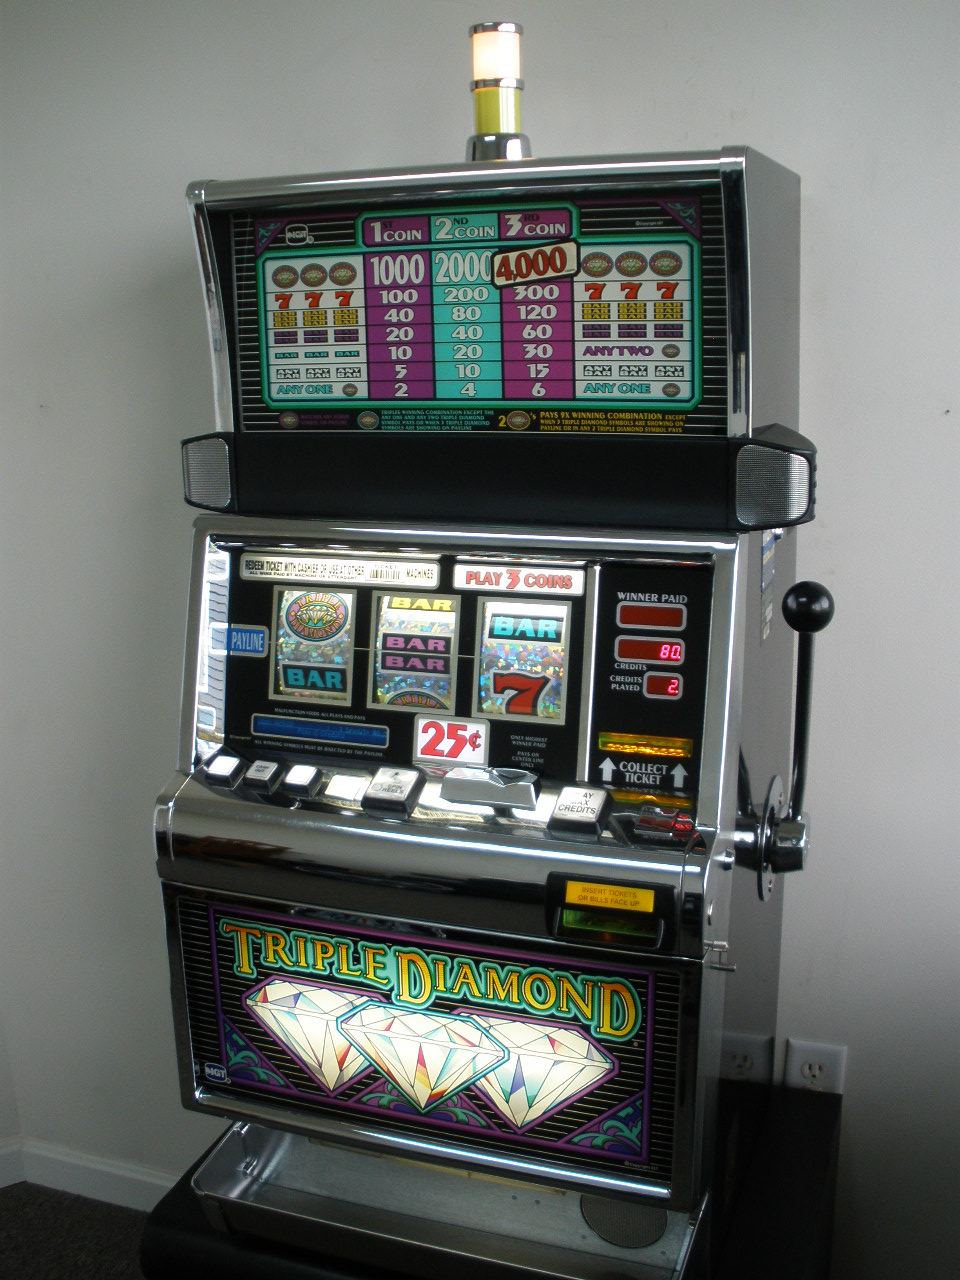 Quarter Slot Machines For Sale